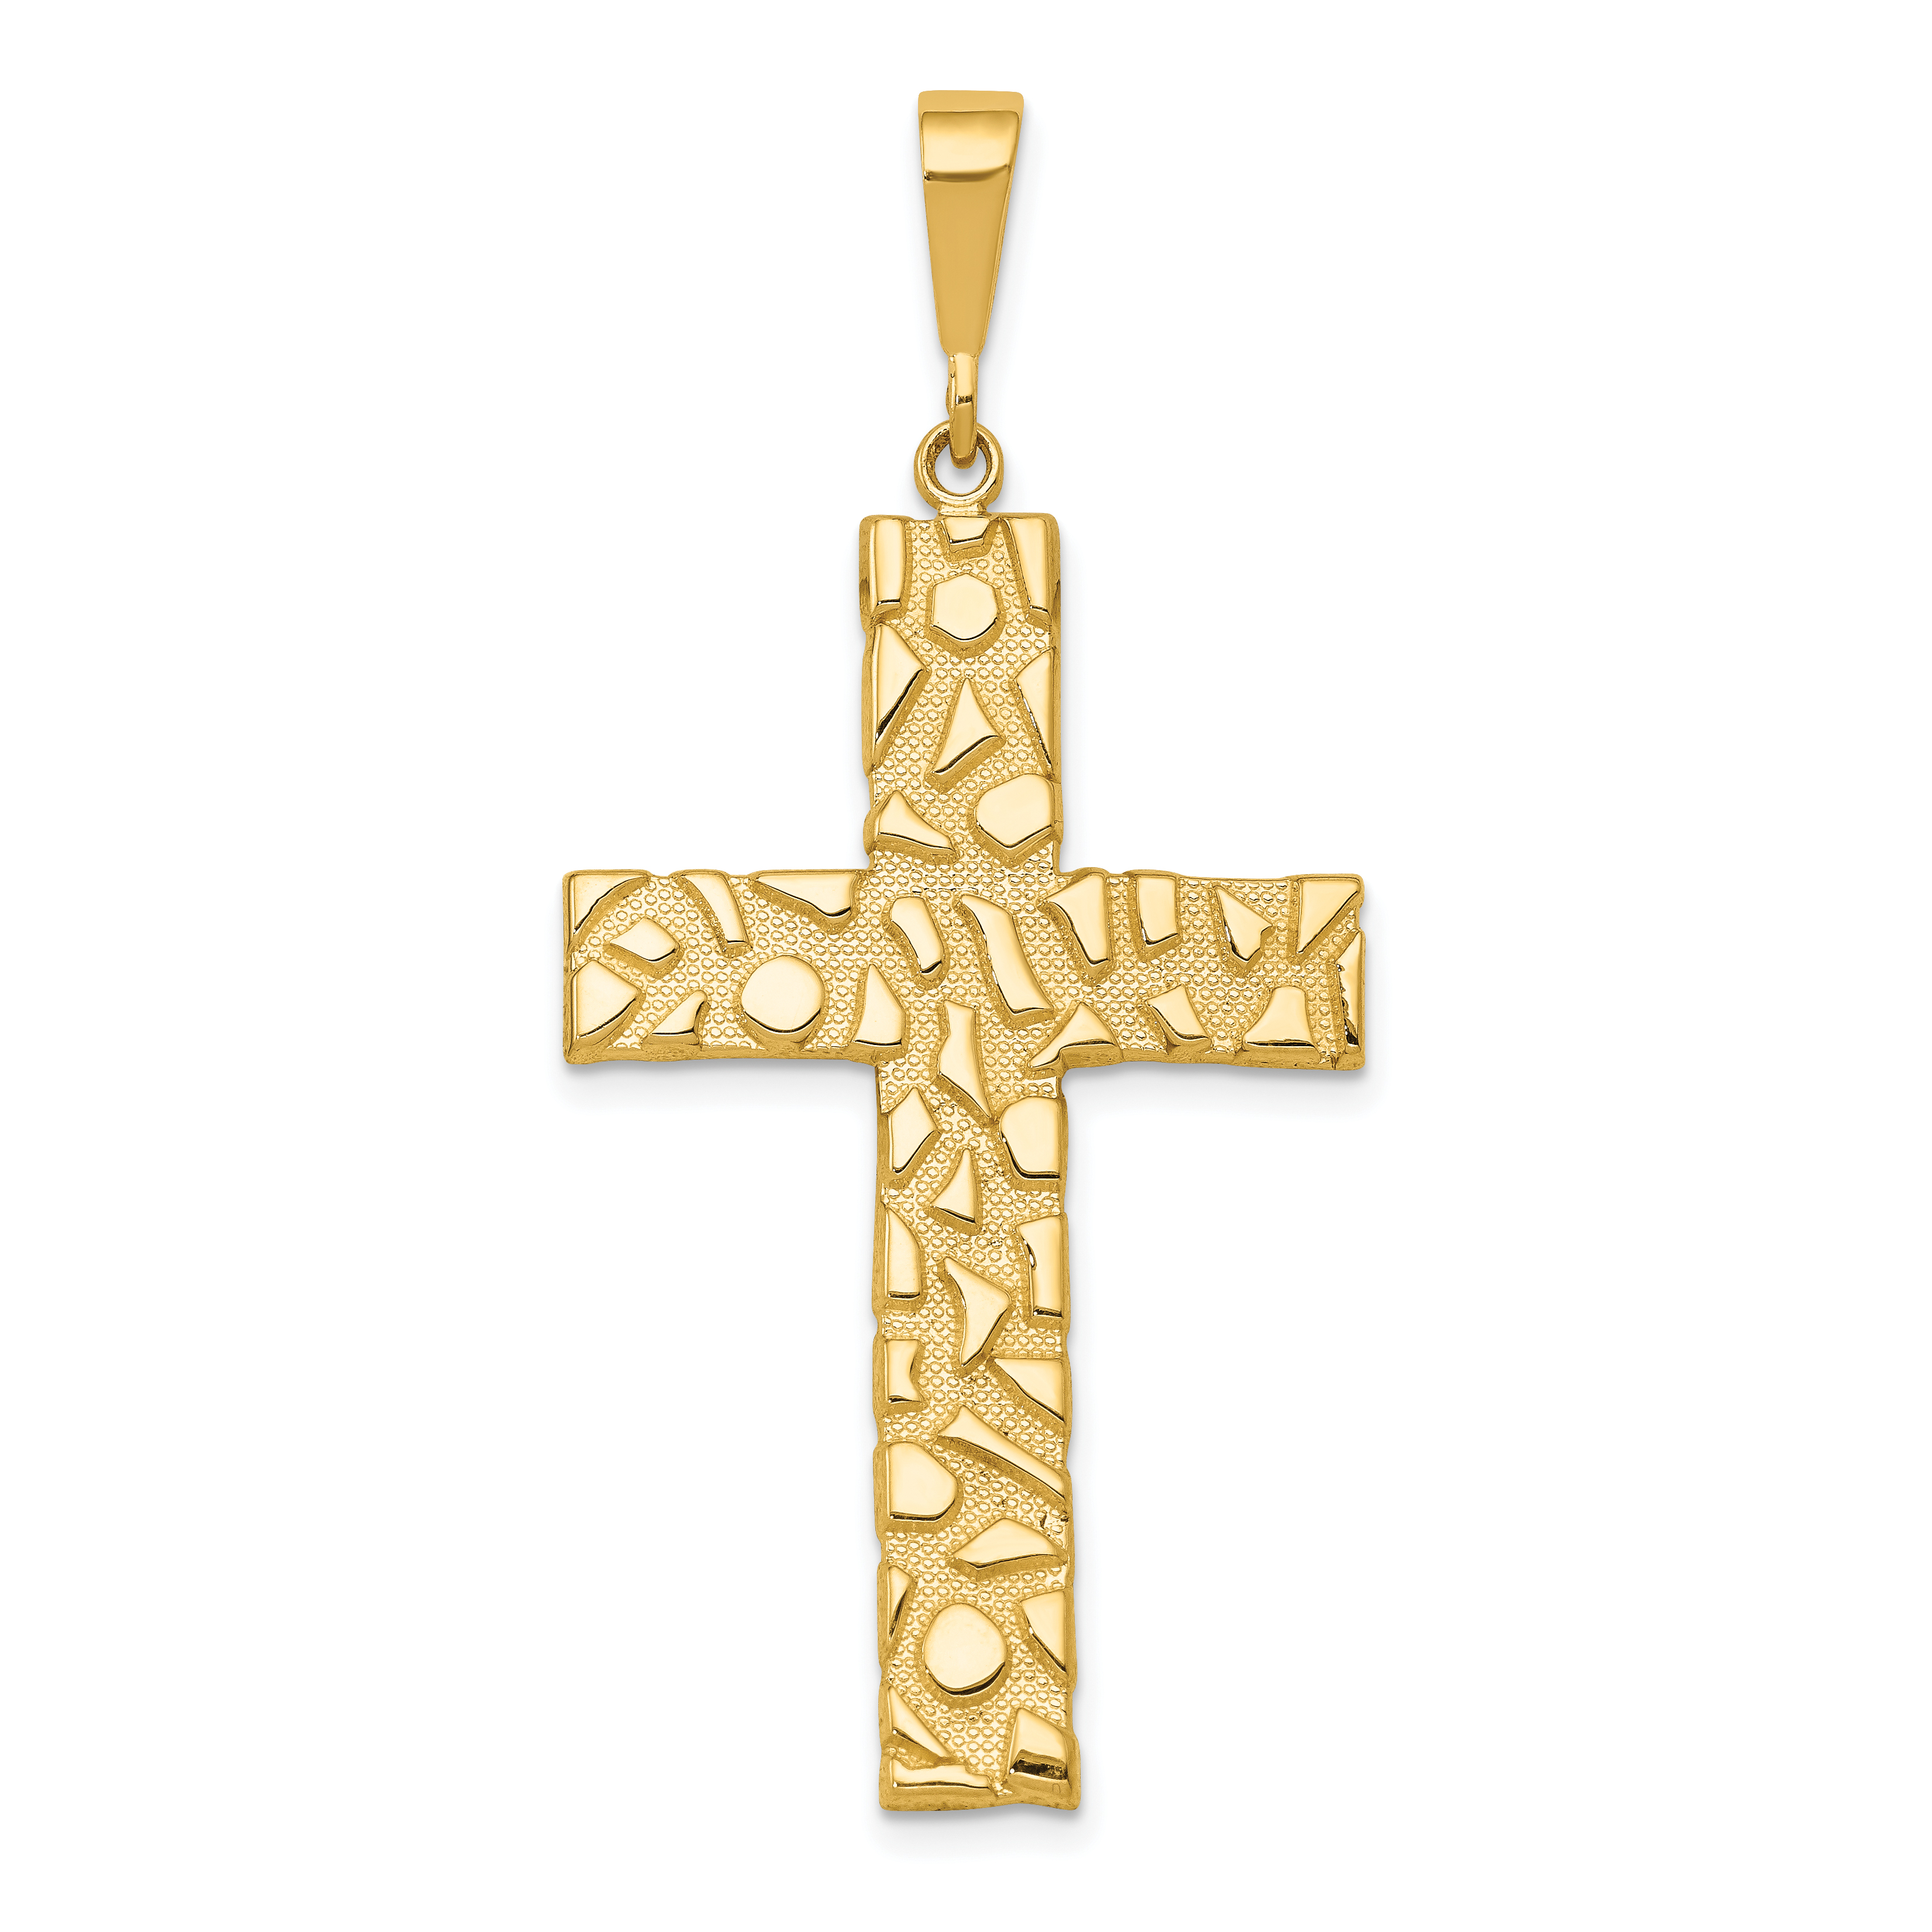 14k Nugget Style Cross Pendant. Weight: 4.25, Length: 50, Width: 23